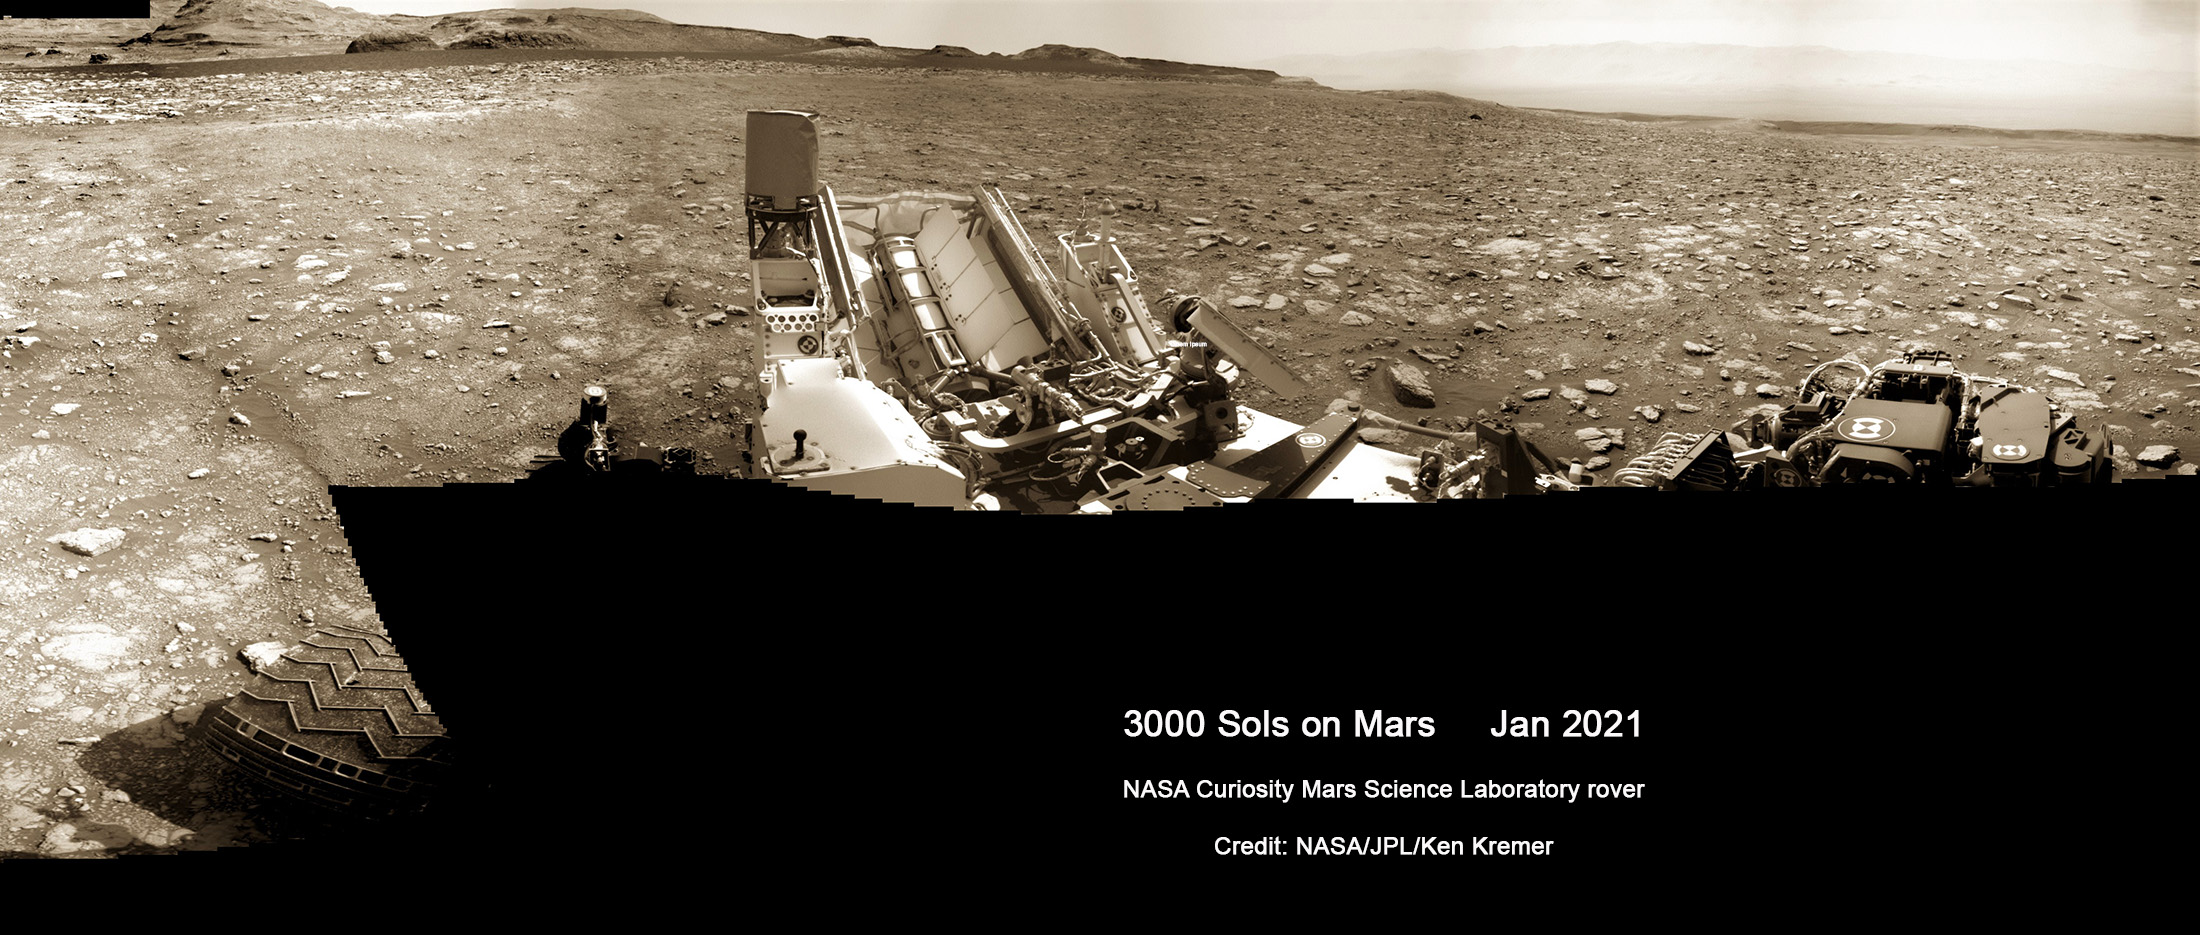 NASA's Curiosity Rover Celebrates 3000 Sols on the Red Planet